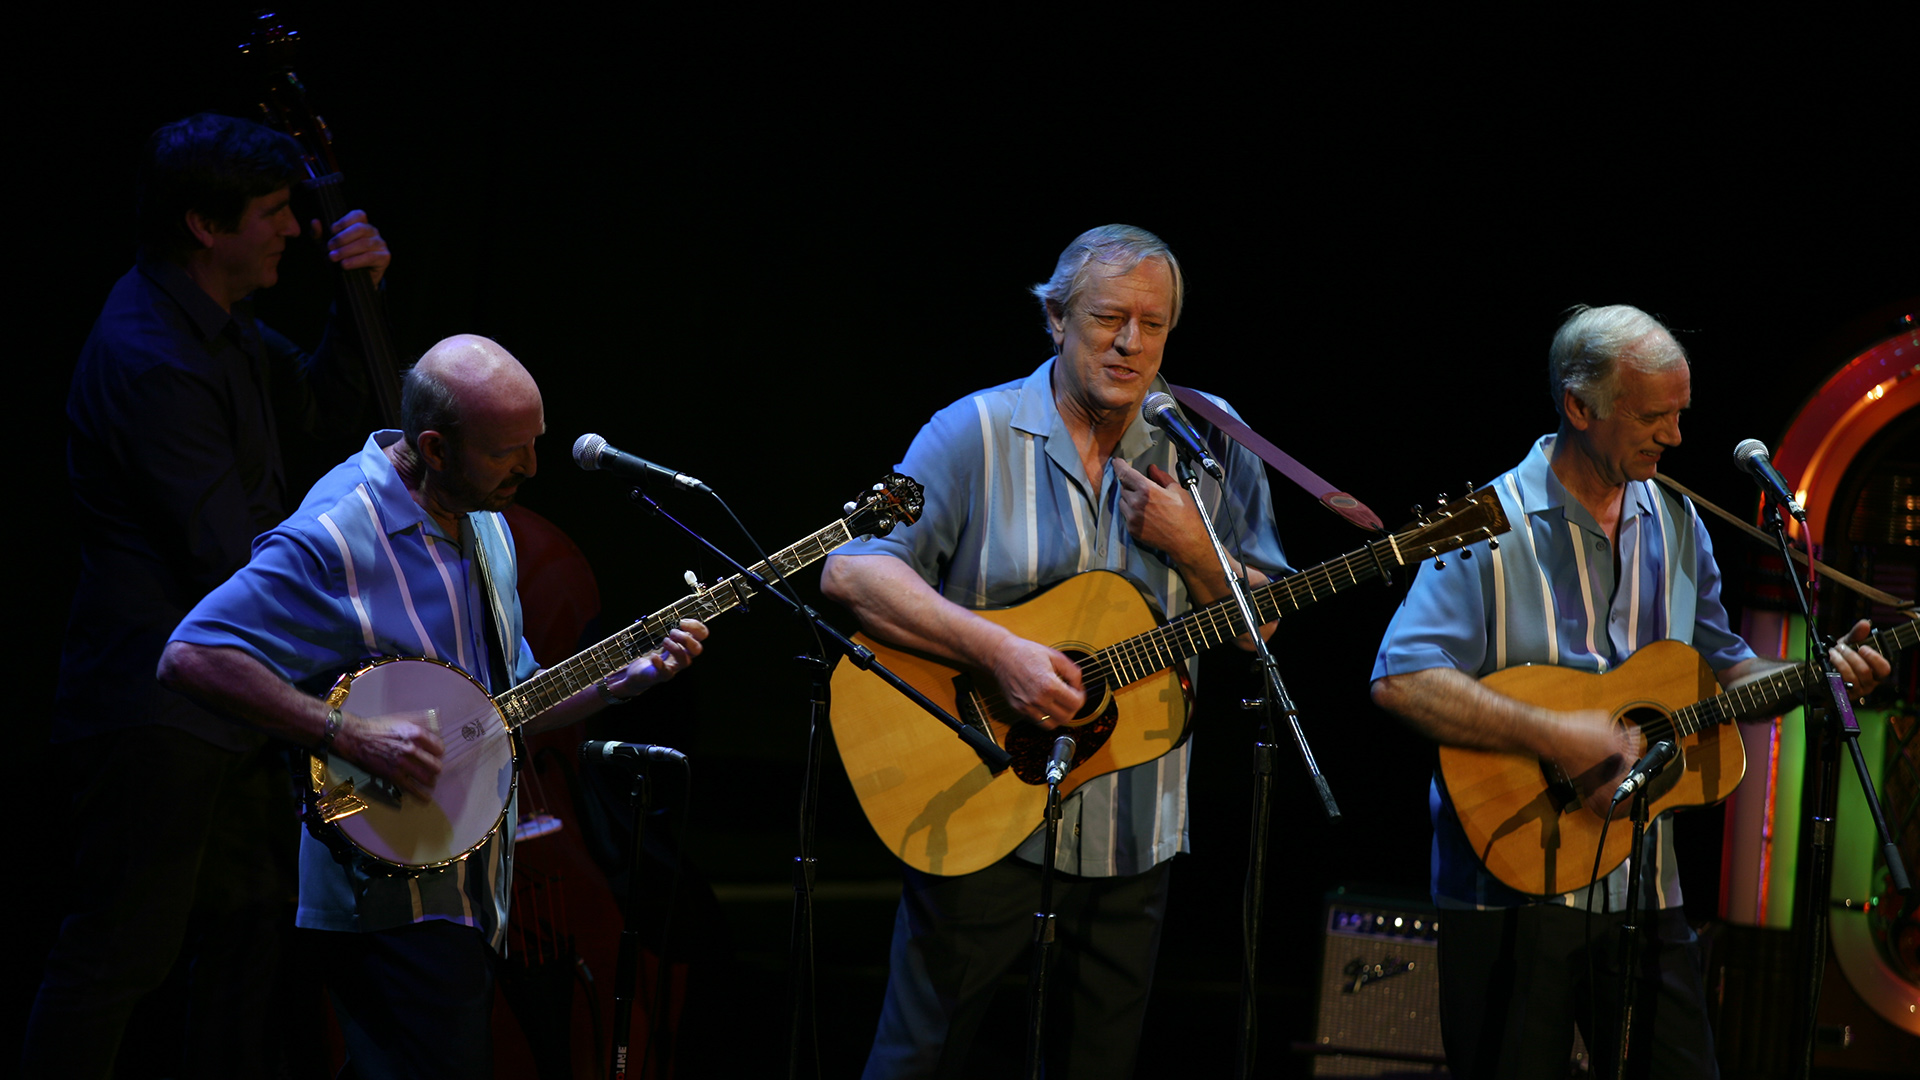 The Kingston Trio Celebration